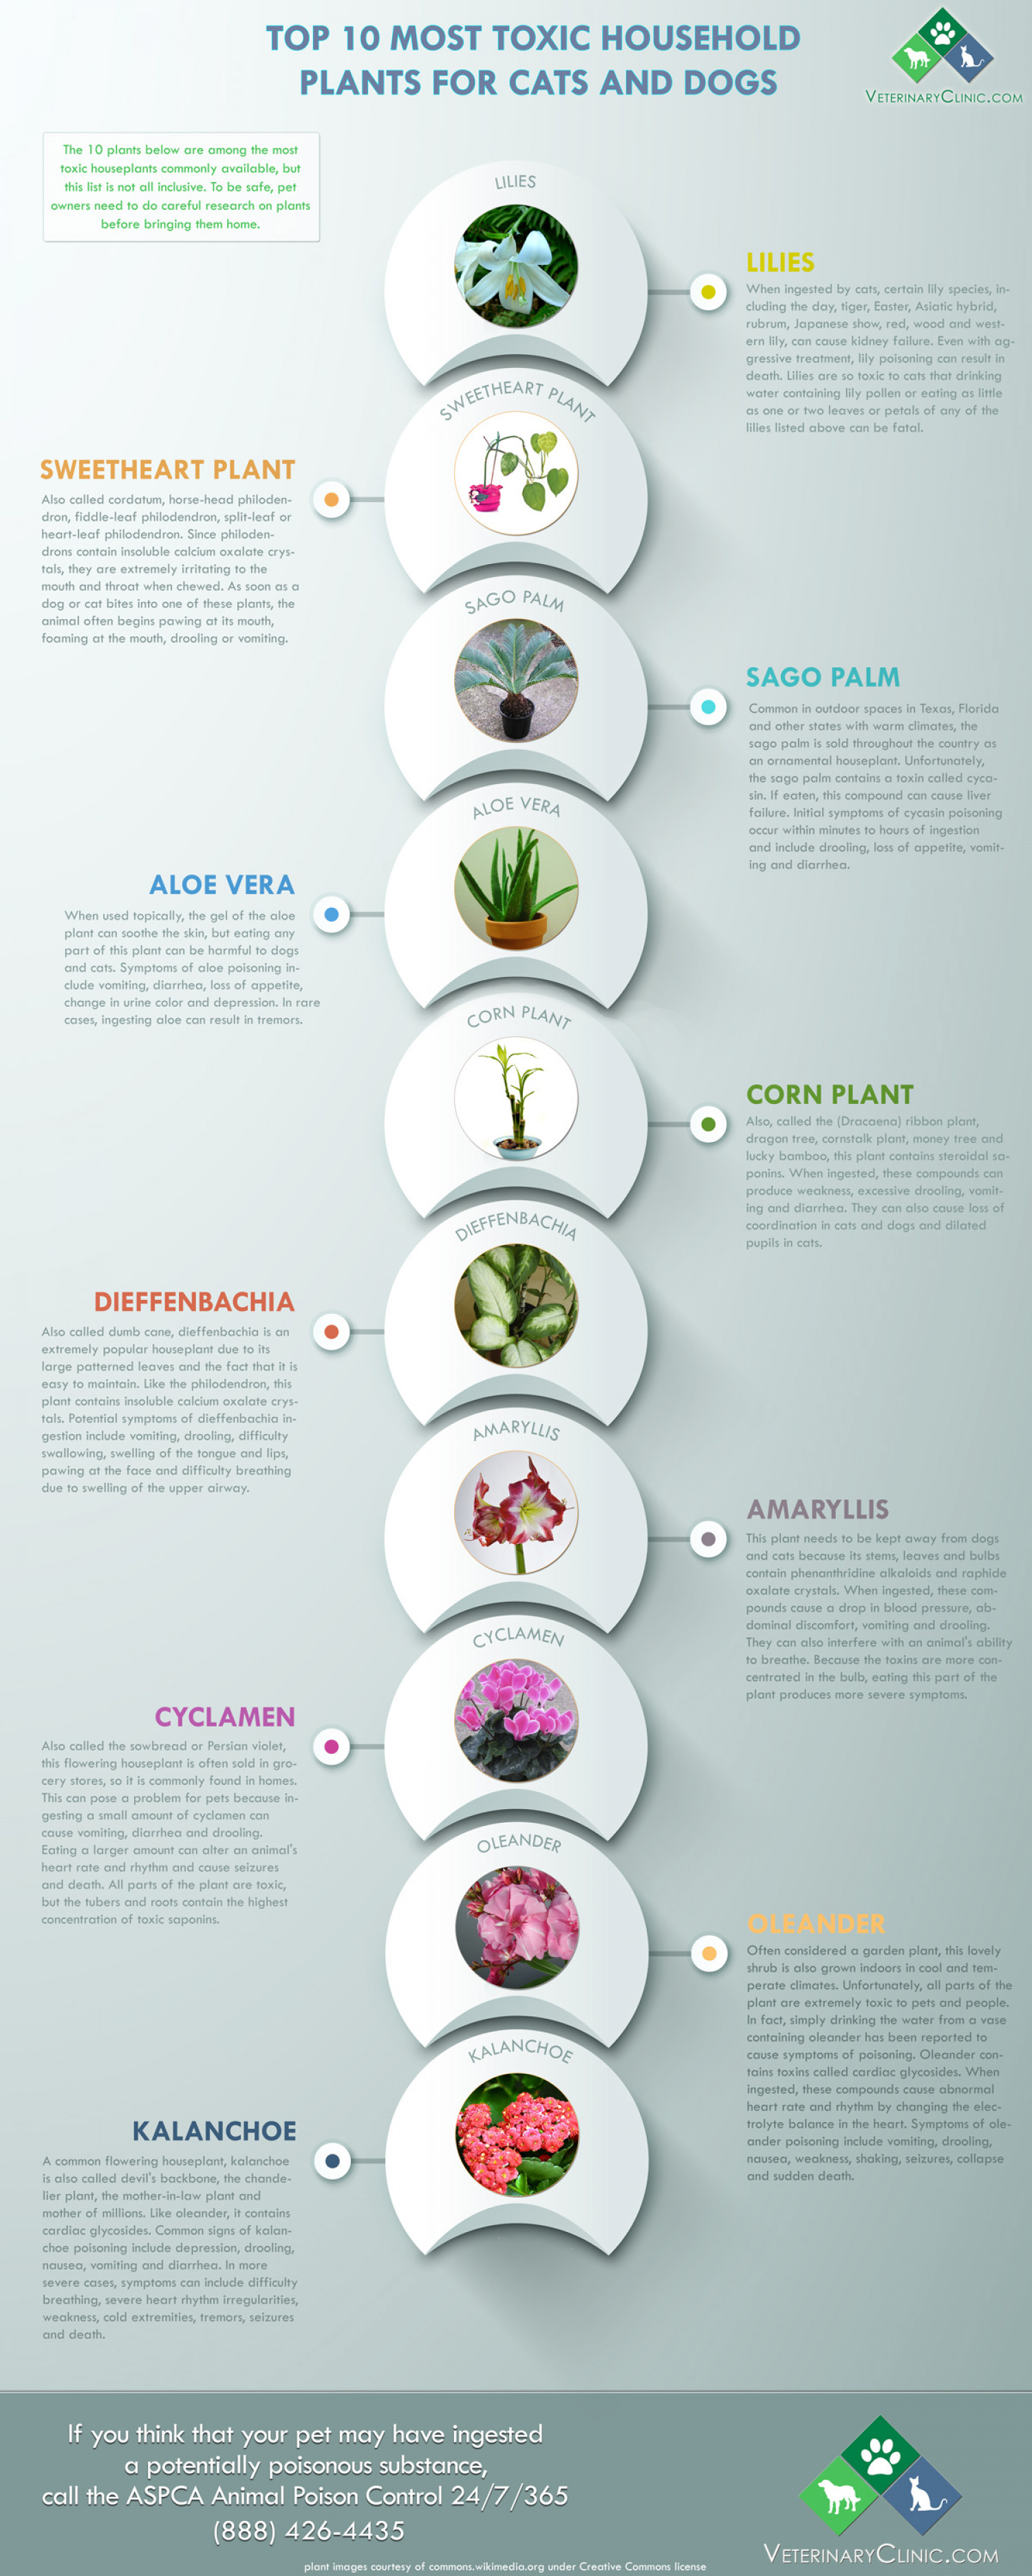 Top 10 Most Toxic Household Plants for Pets Infographic